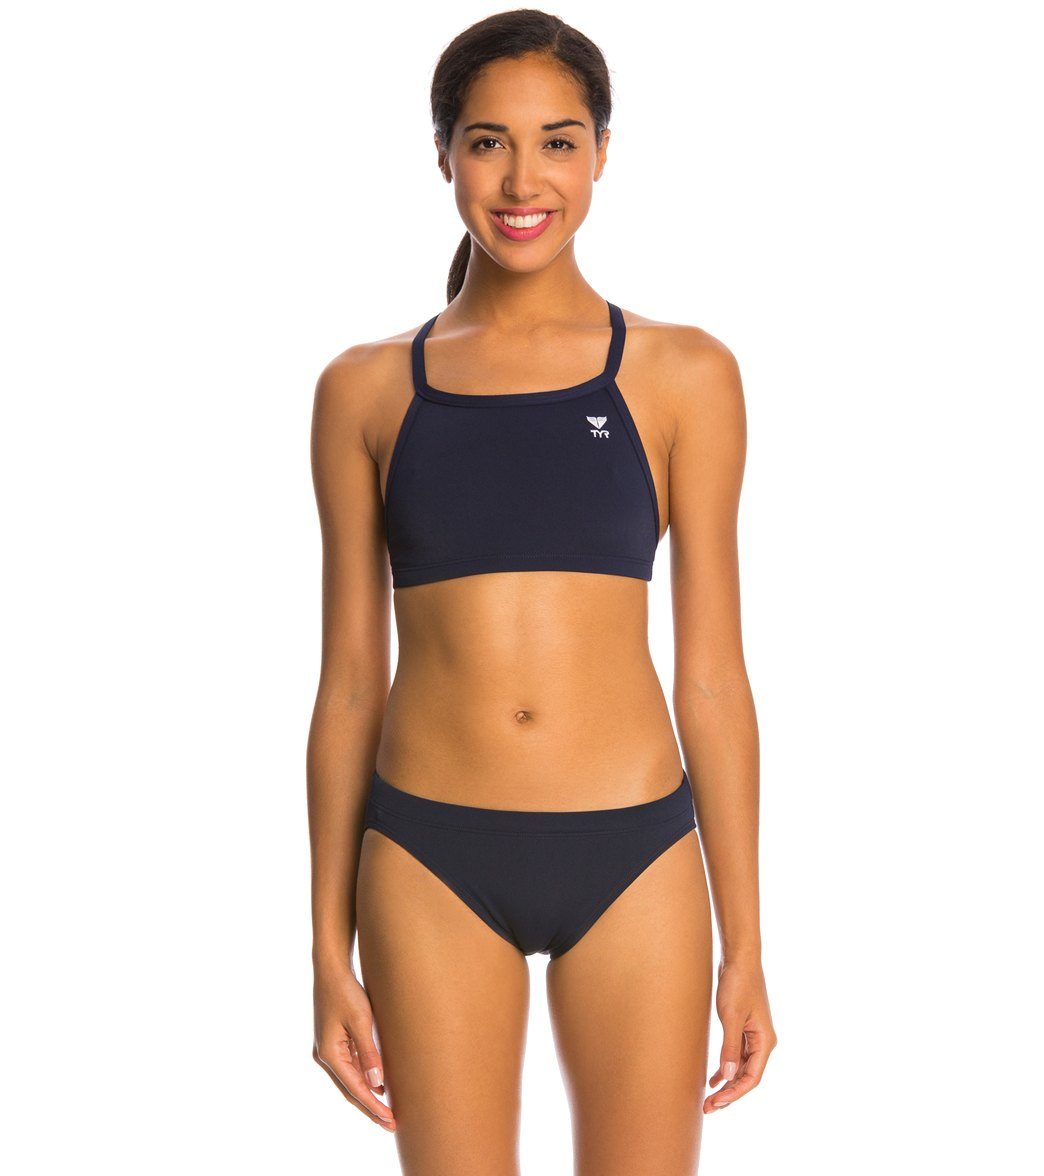 57a8ecc5fdbfc TYR Solid Durafast One Diamondback Workout Bikini Swimsuit Set at  SwimOutlet.com - Free Shipping